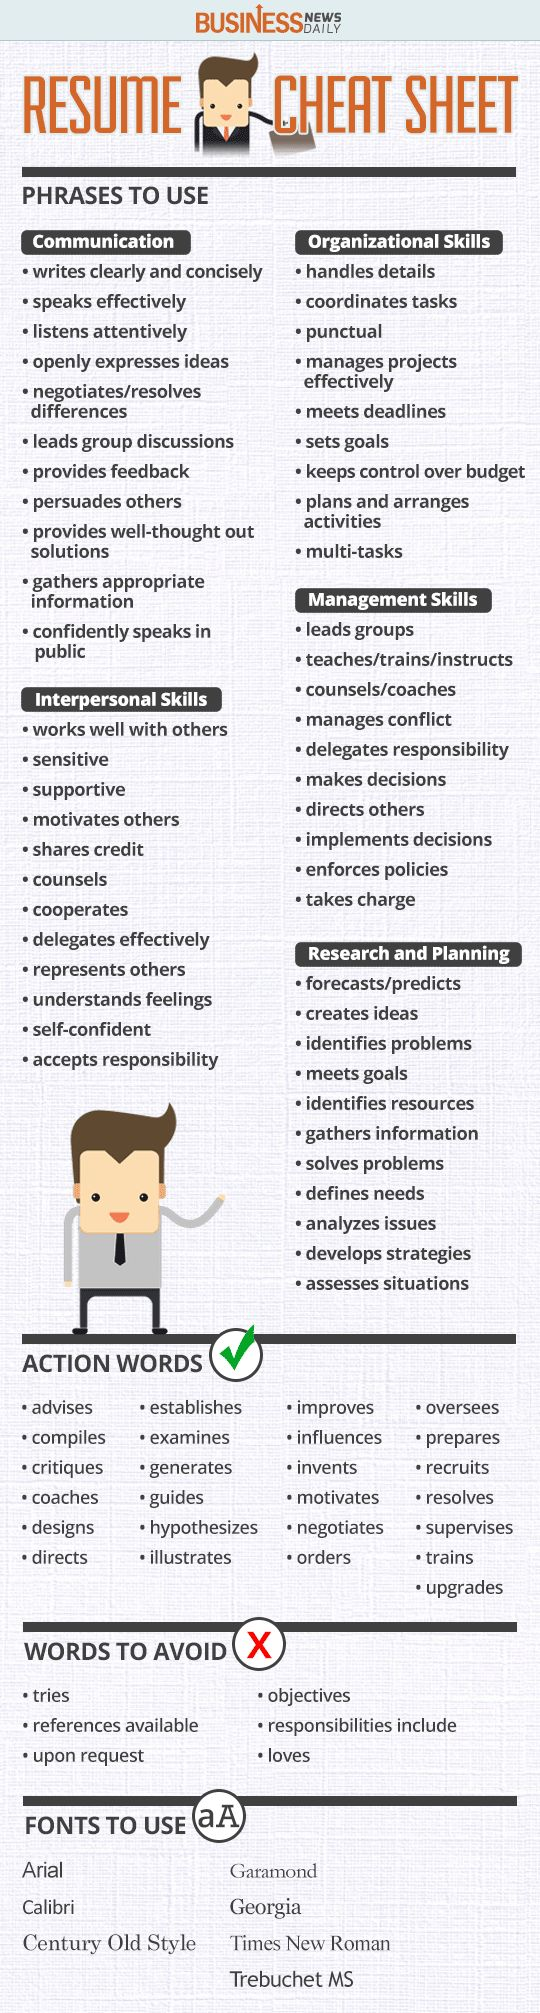 Opposenewapstandardsus  Winning  Ideas About Resume On Pinterest  Cv Format Resume Cv And  With Remarkable Resume Cheat Sheet Infographic Andrews Almost Done With A Complete Unit On Employment Which With Endearing Good Objective Statements For Resume Also Example Of Objective In Resume In Addition Video Production Resume And Sample Of Resume Objective As Well As Sales Position Resume Additionally Free Resume Download Templates From Pinterestcom With Opposenewapstandardsus  Remarkable  Ideas About Resume On Pinterest  Cv Format Resume Cv And  With Endearing Resume Cheat Sheet Infographic Andrews Almost Done With A Complete Unit On Employment Which And Winning Good Objective Statements For Resume Also Example Of Objective In Resume In Addition Video Production Resume From Pinterestcom